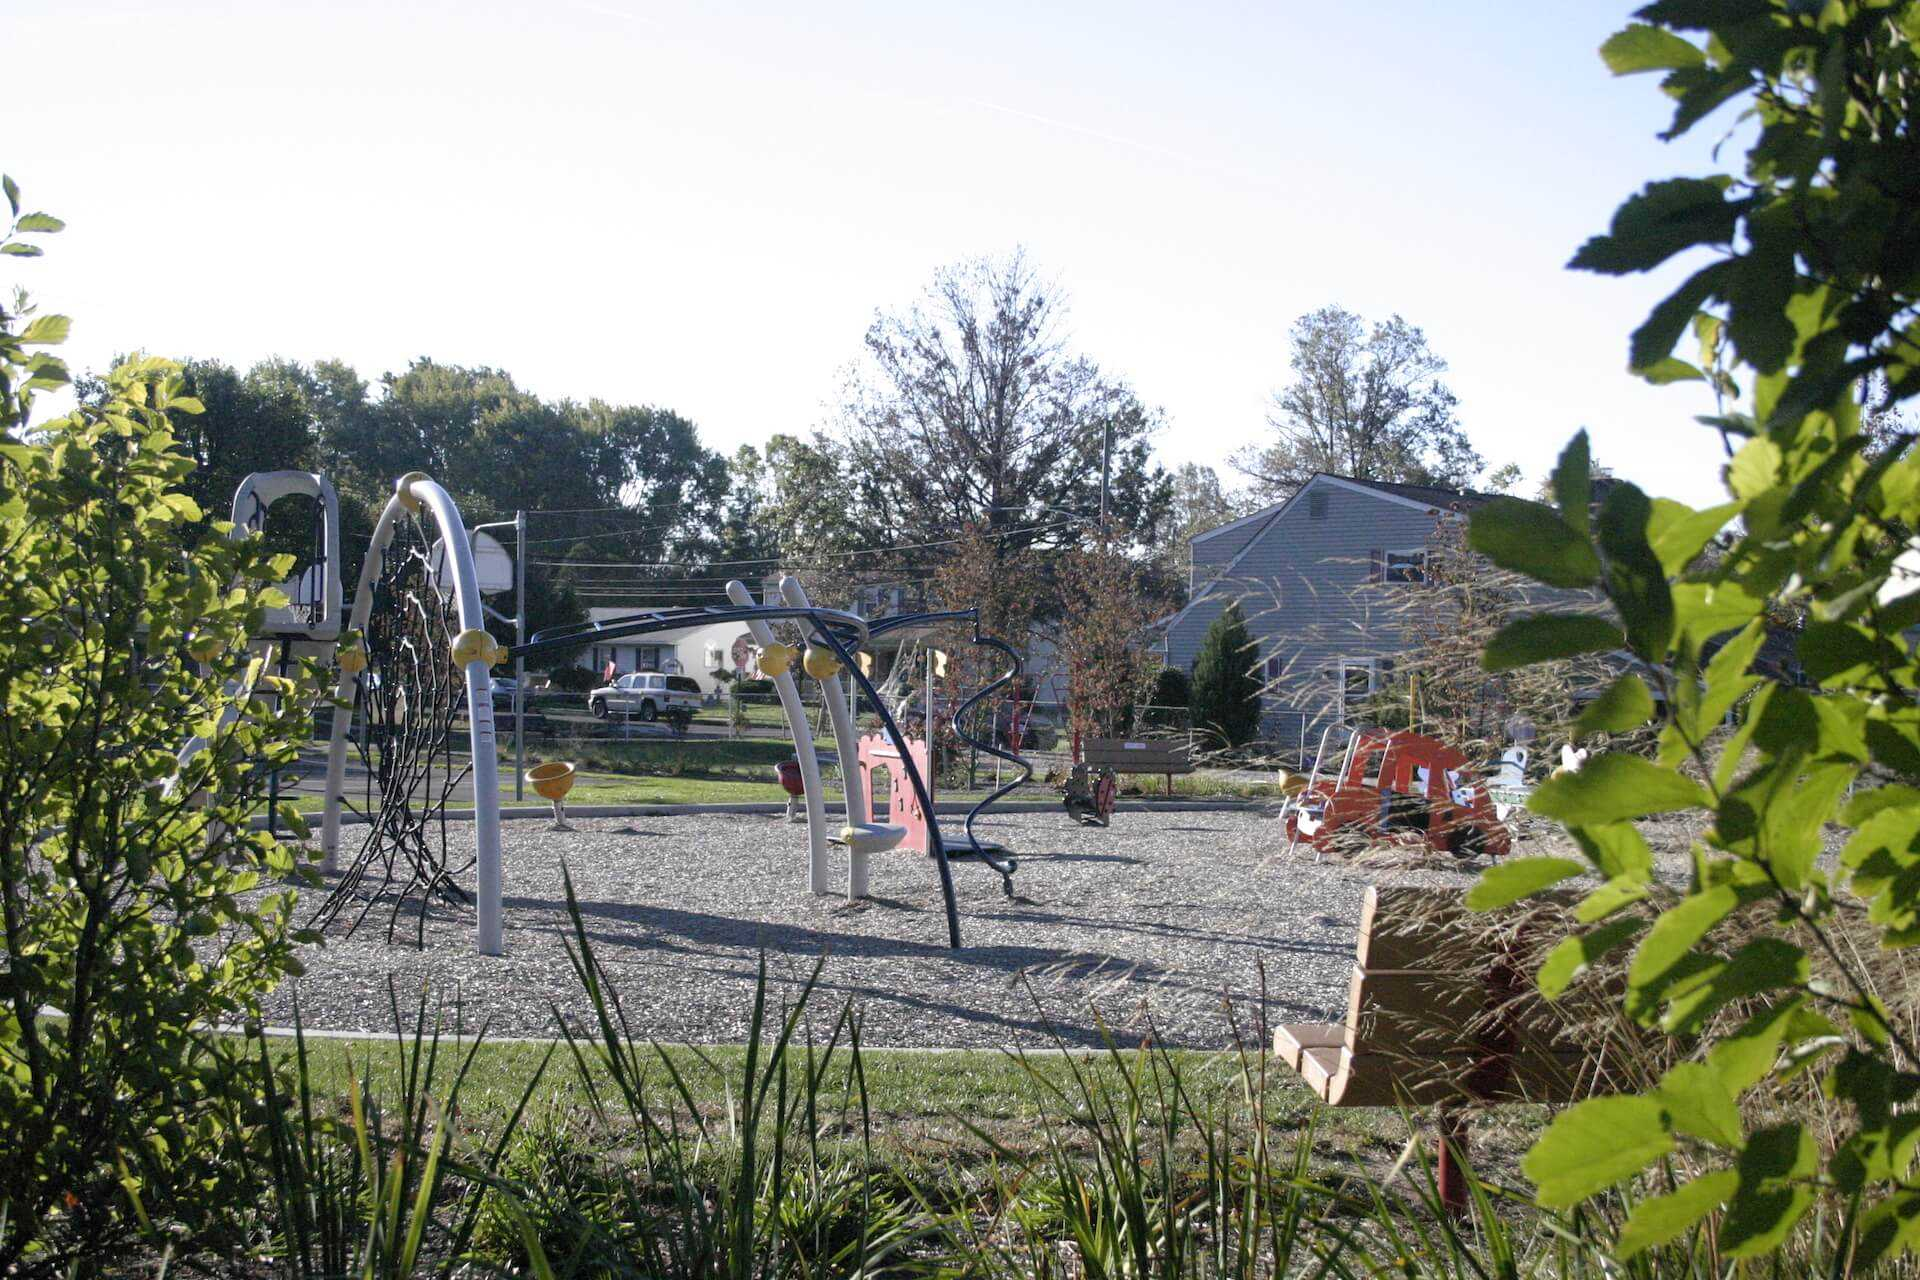 playground behind landscaping and park bench